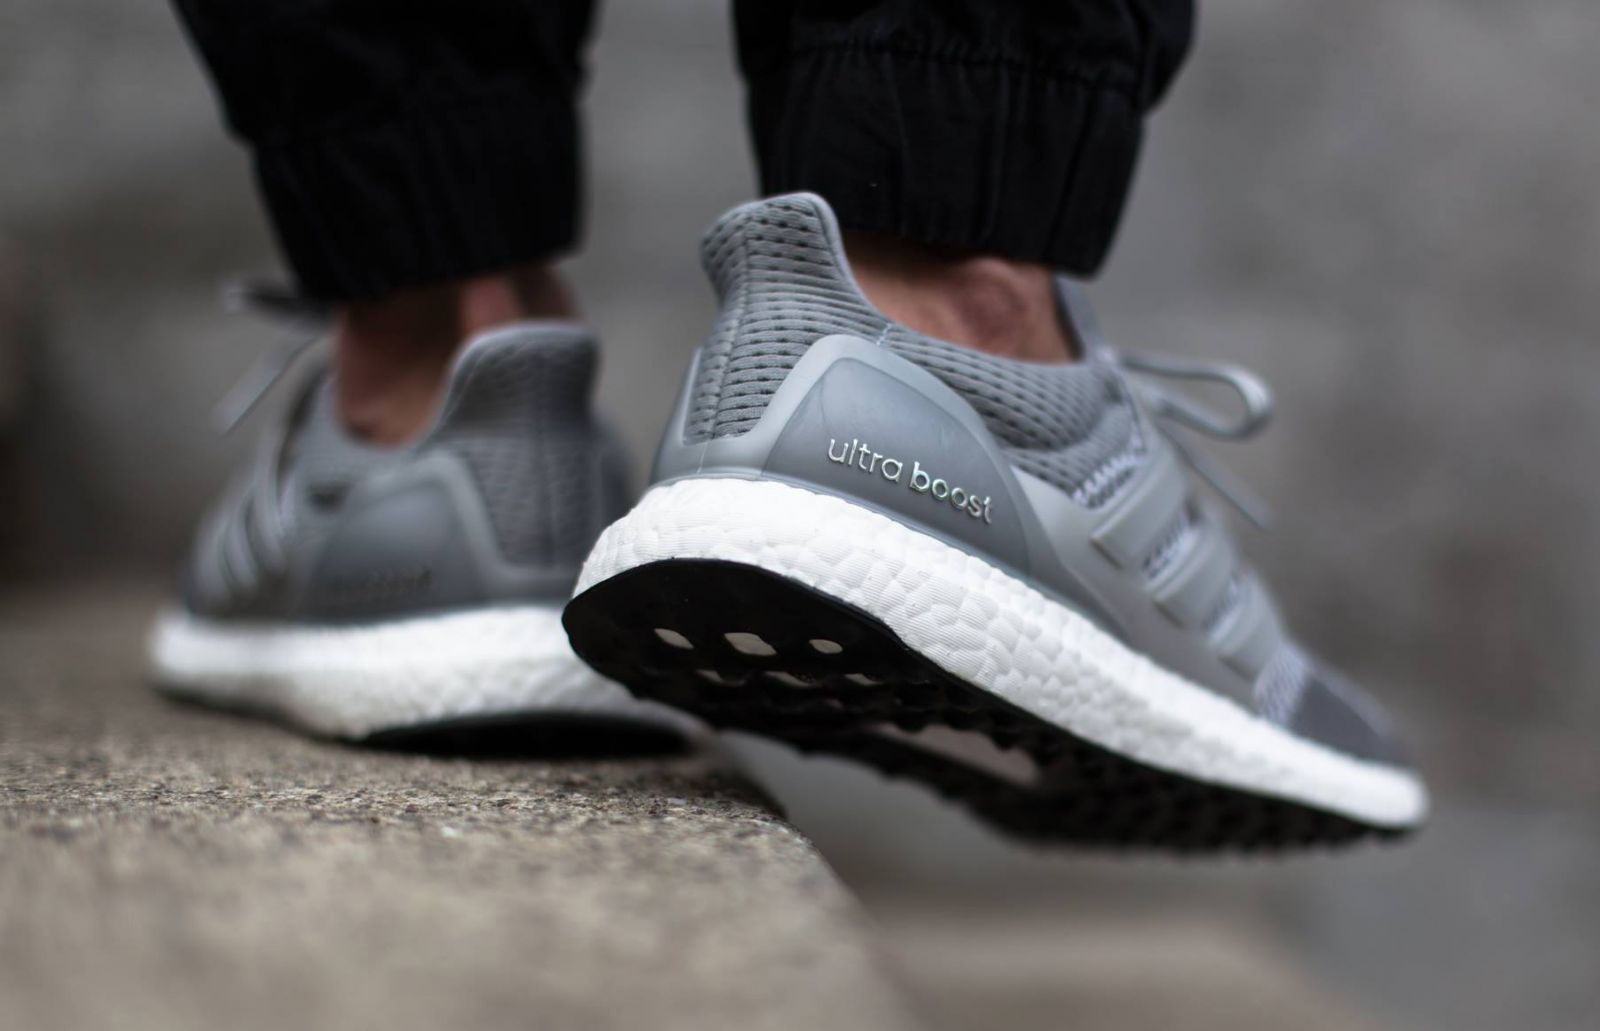 See How The Metallic Silver Adidas Ultra Boost Looks On